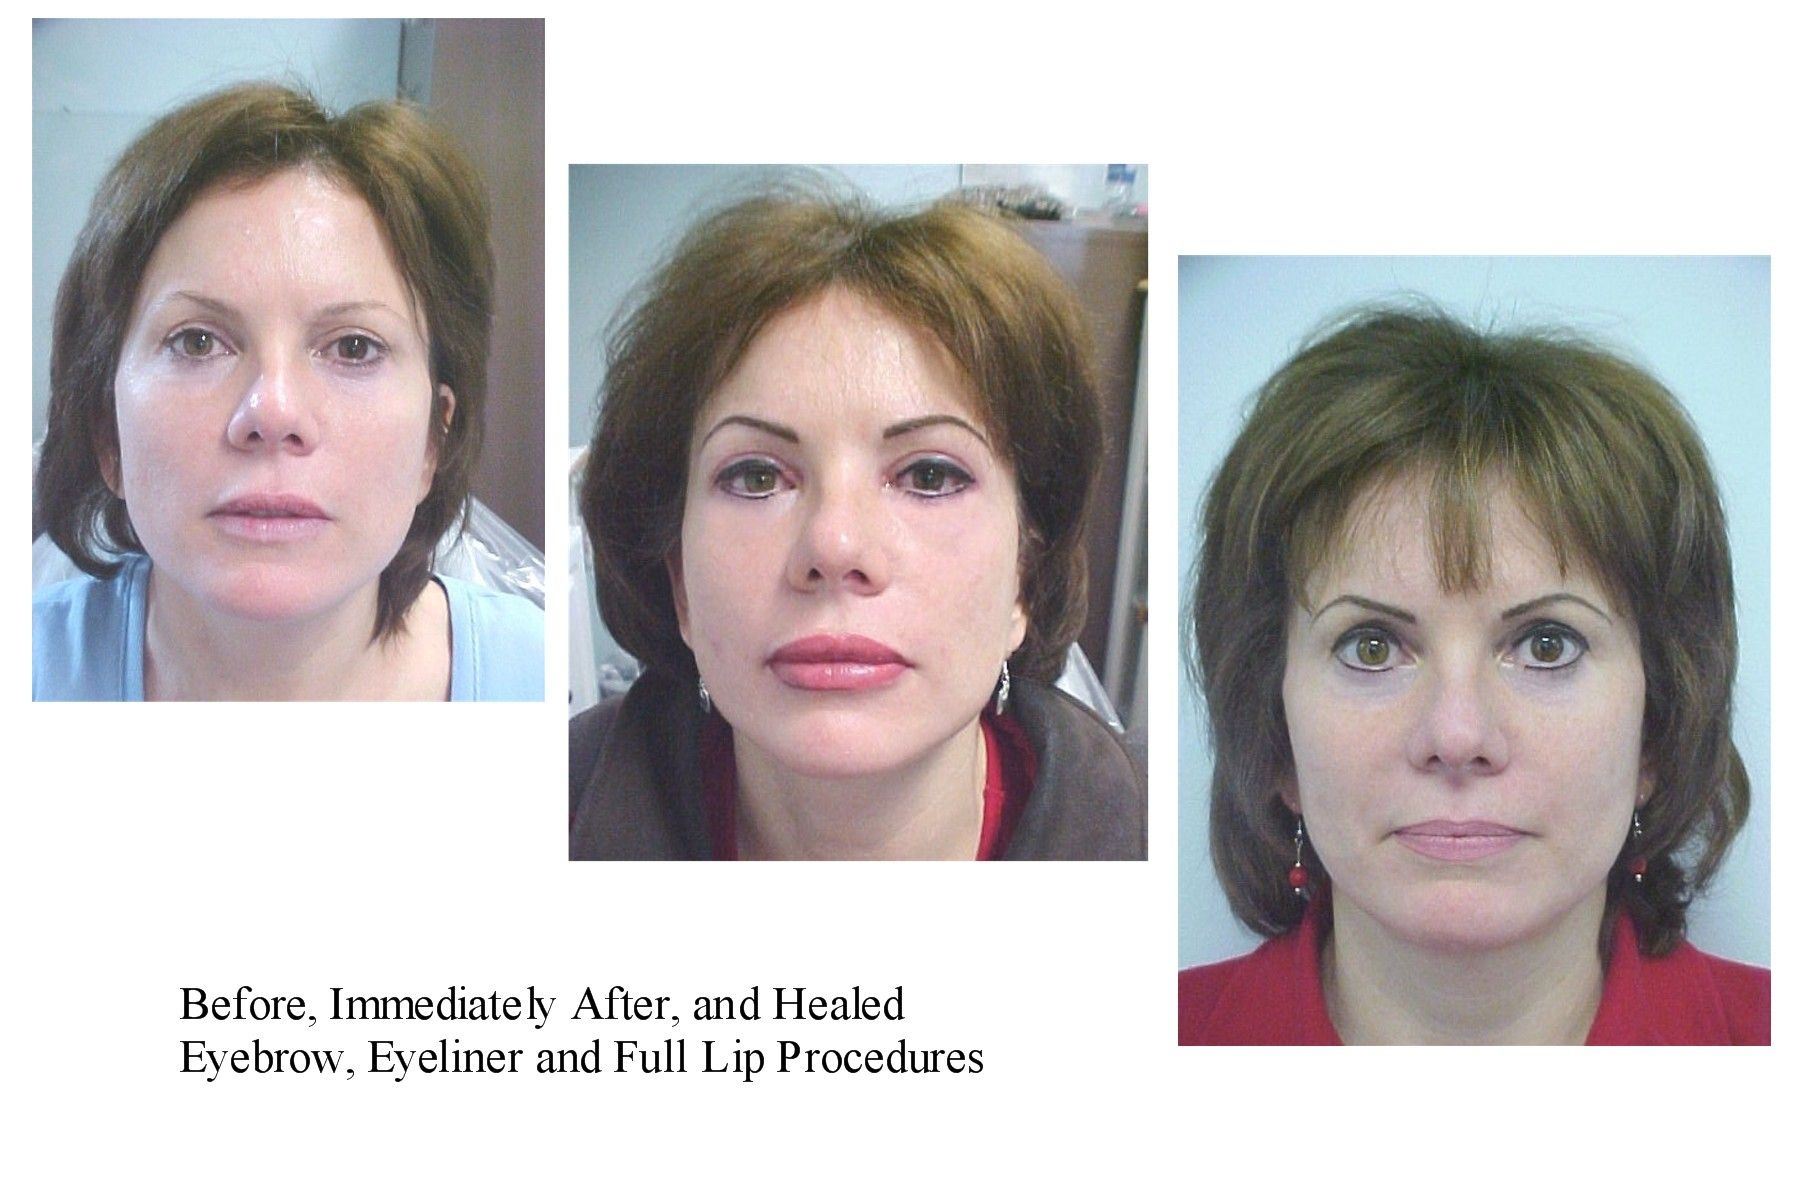 Bad Permanent Makeup Permanent Makeup Before